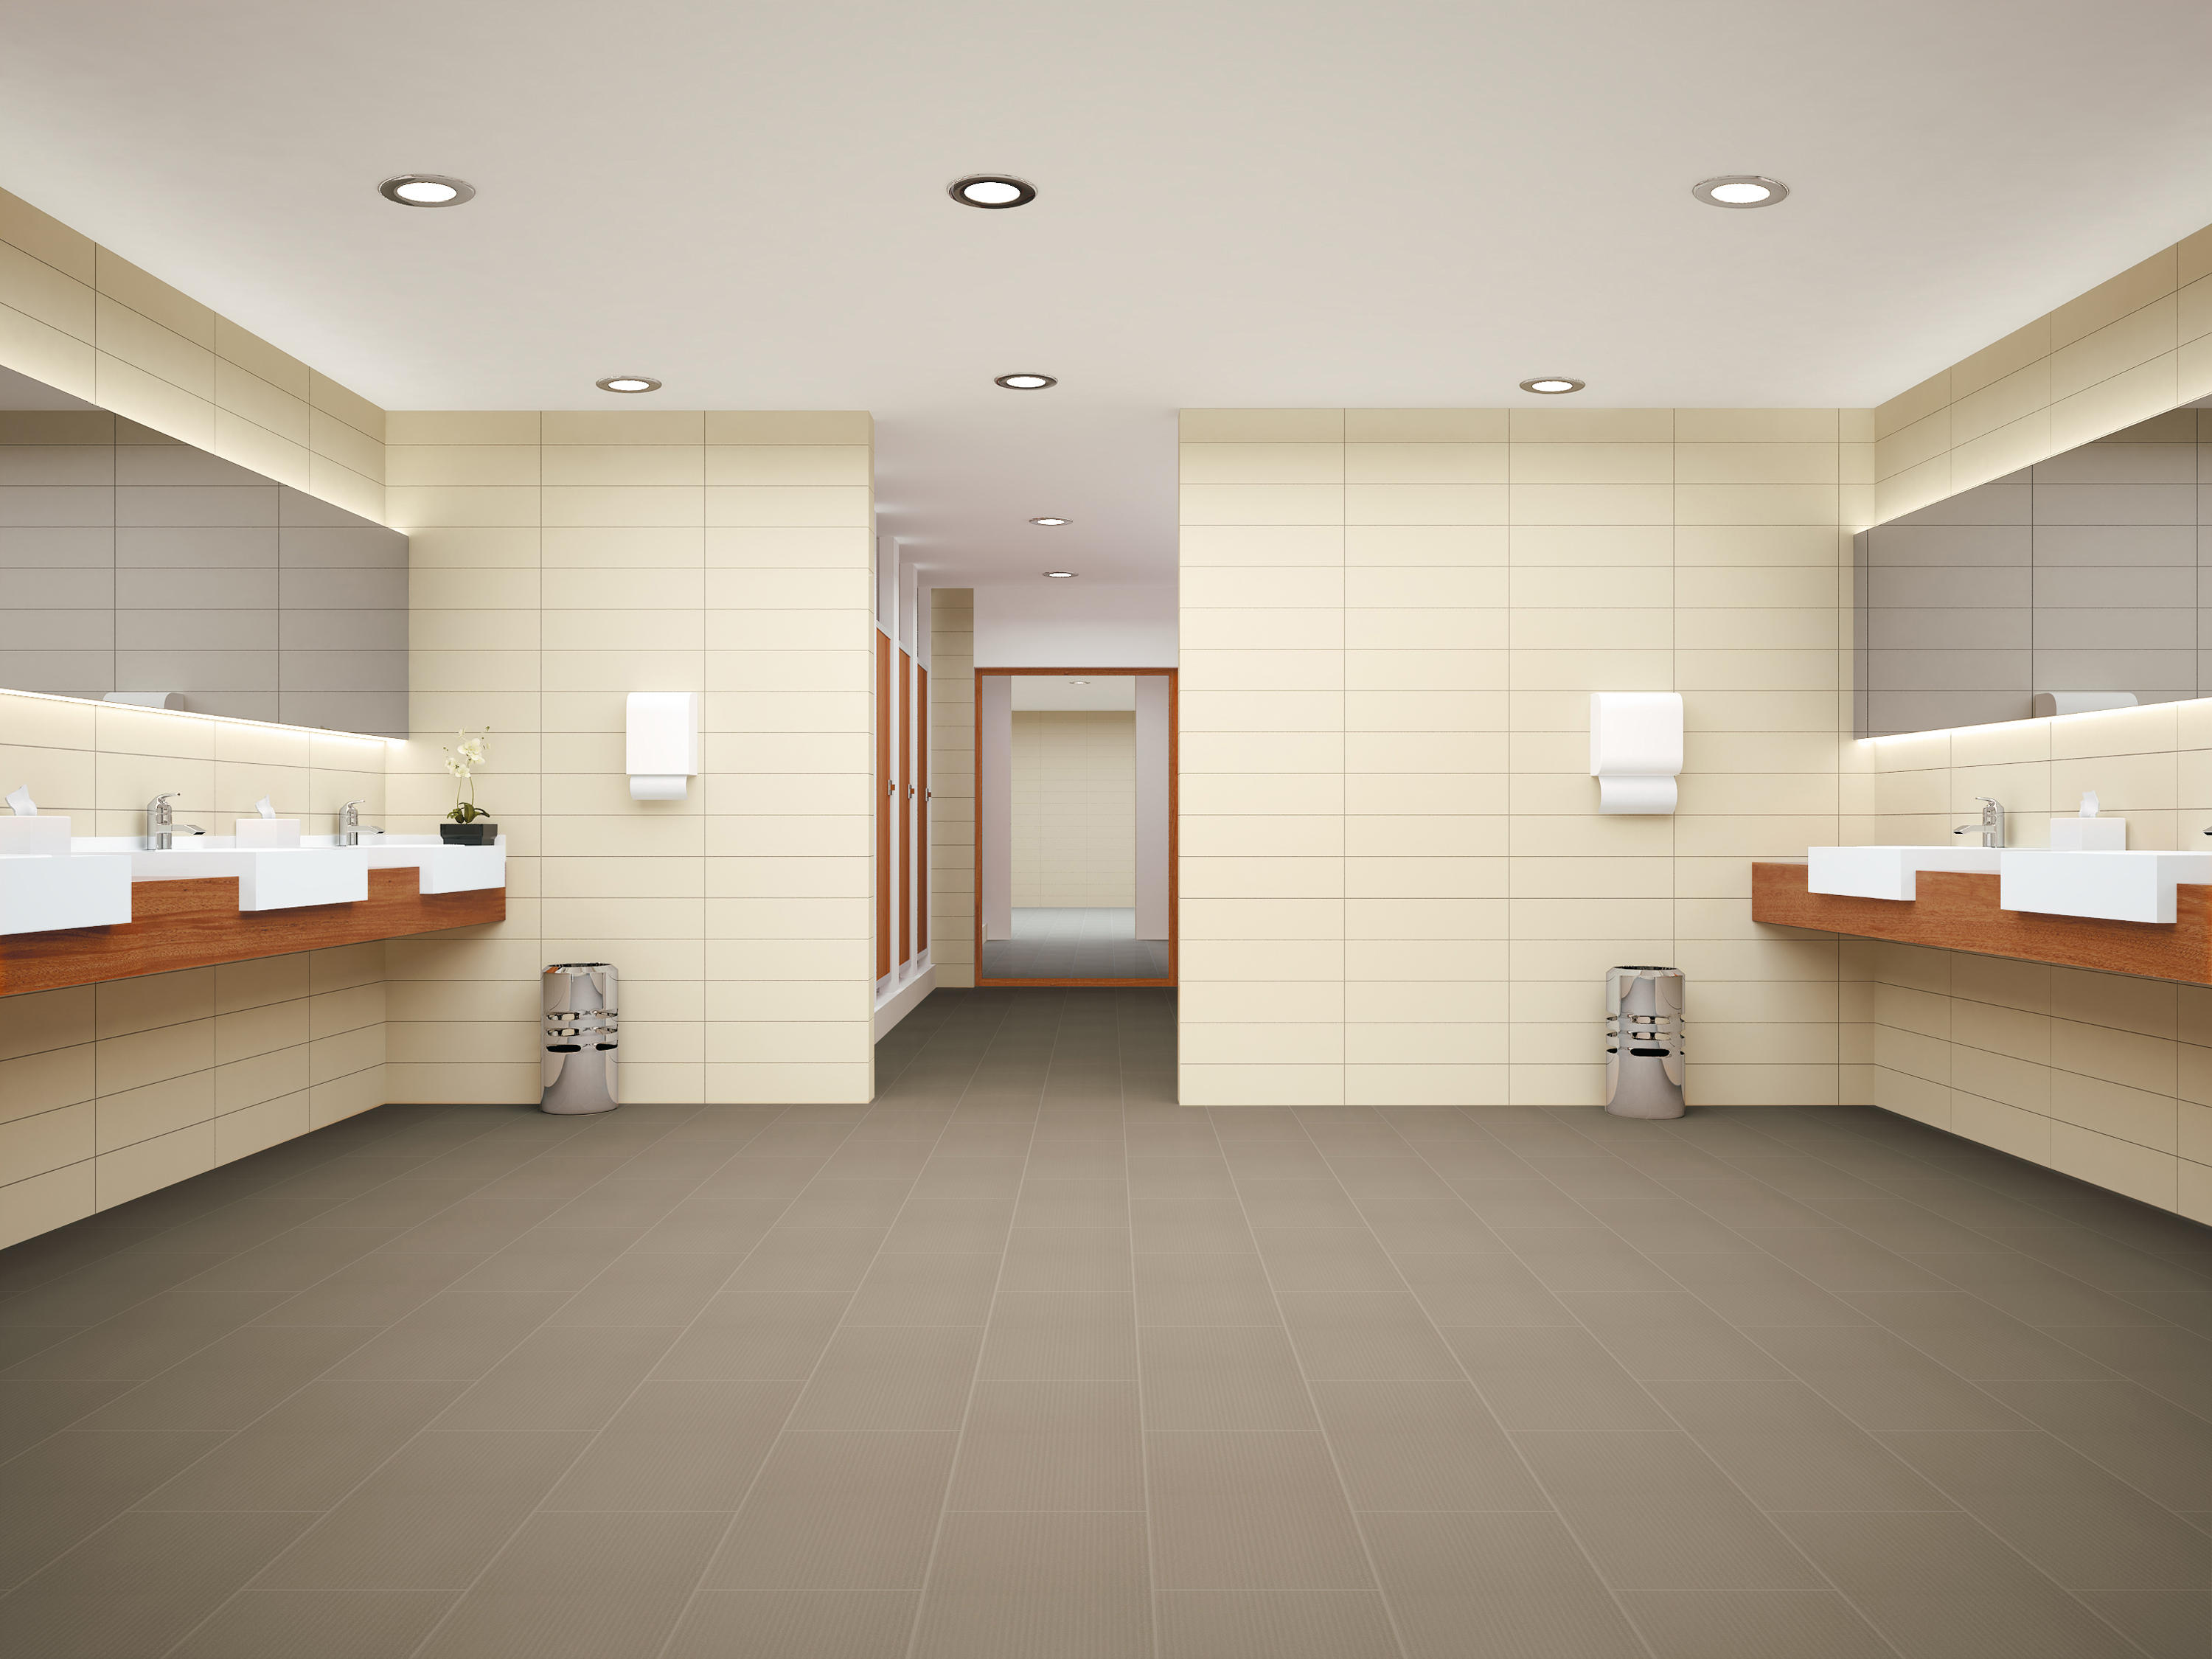 Old Fashioned Ative Shower Rods Component - Bathroom and Shower ...